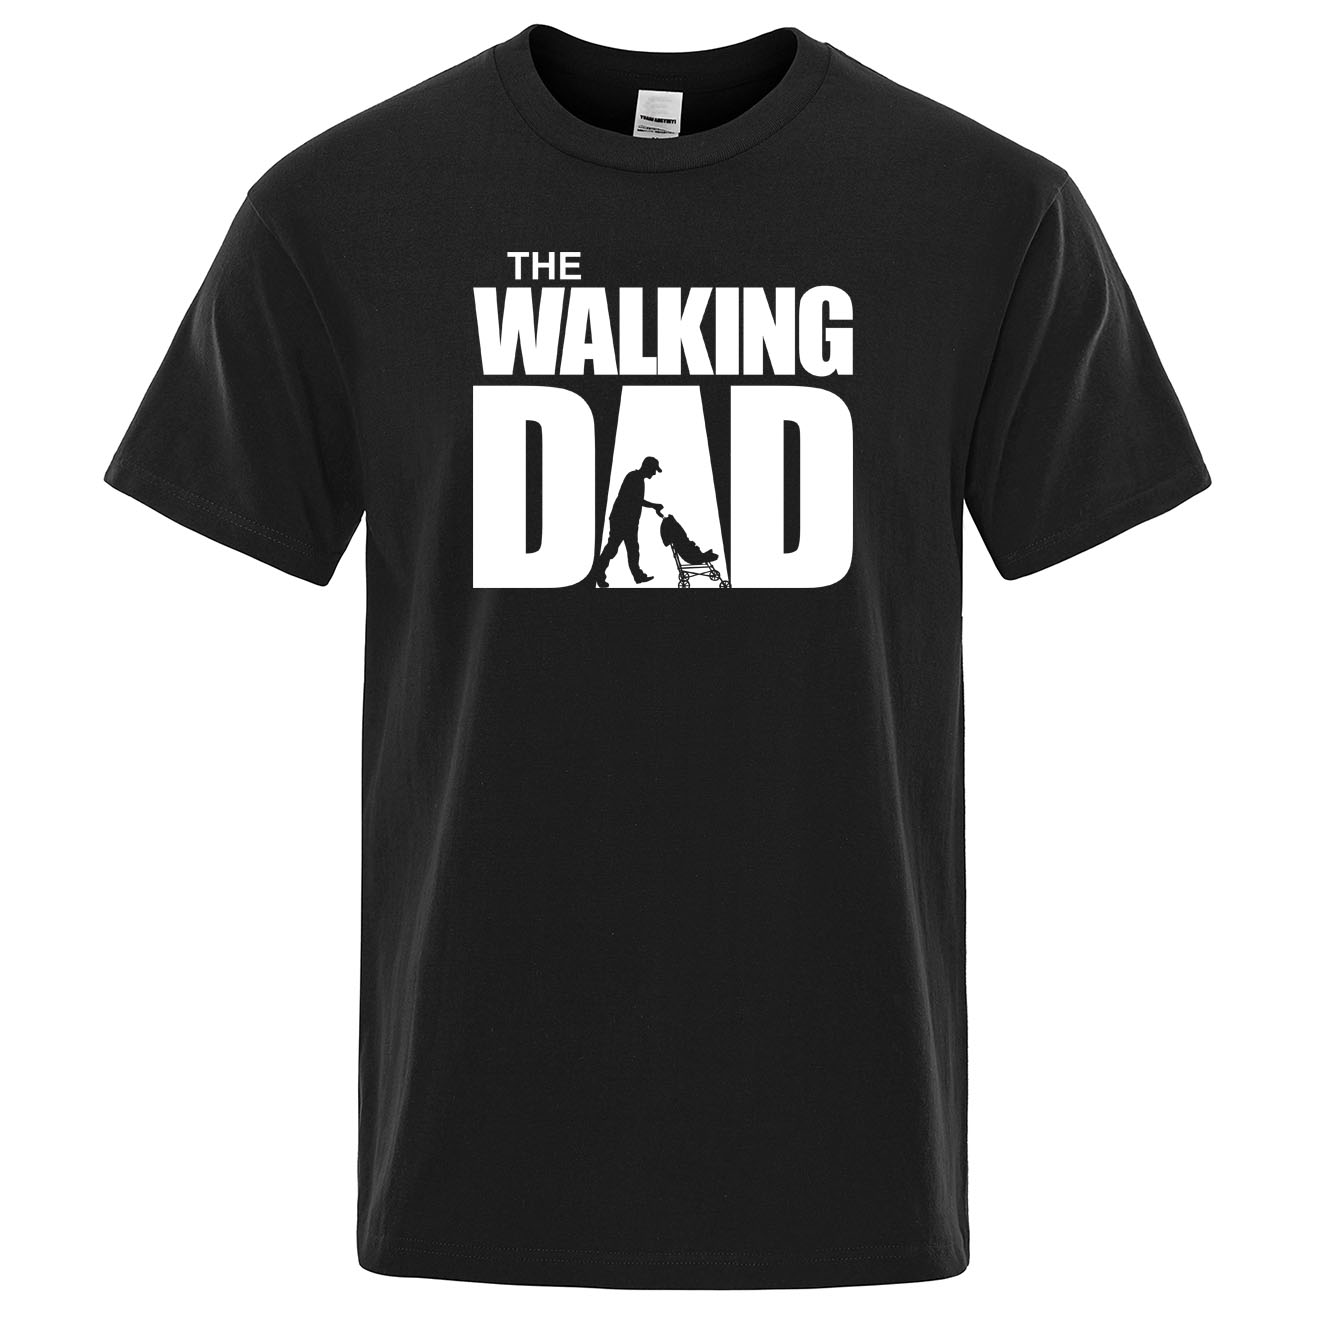 Summer T-shirt The Walking Dad T Shirt Men Cool Casual Mens Tshirt Fashion Hip Hop Tops Streetwear Father's Day Gift Tee Shirts